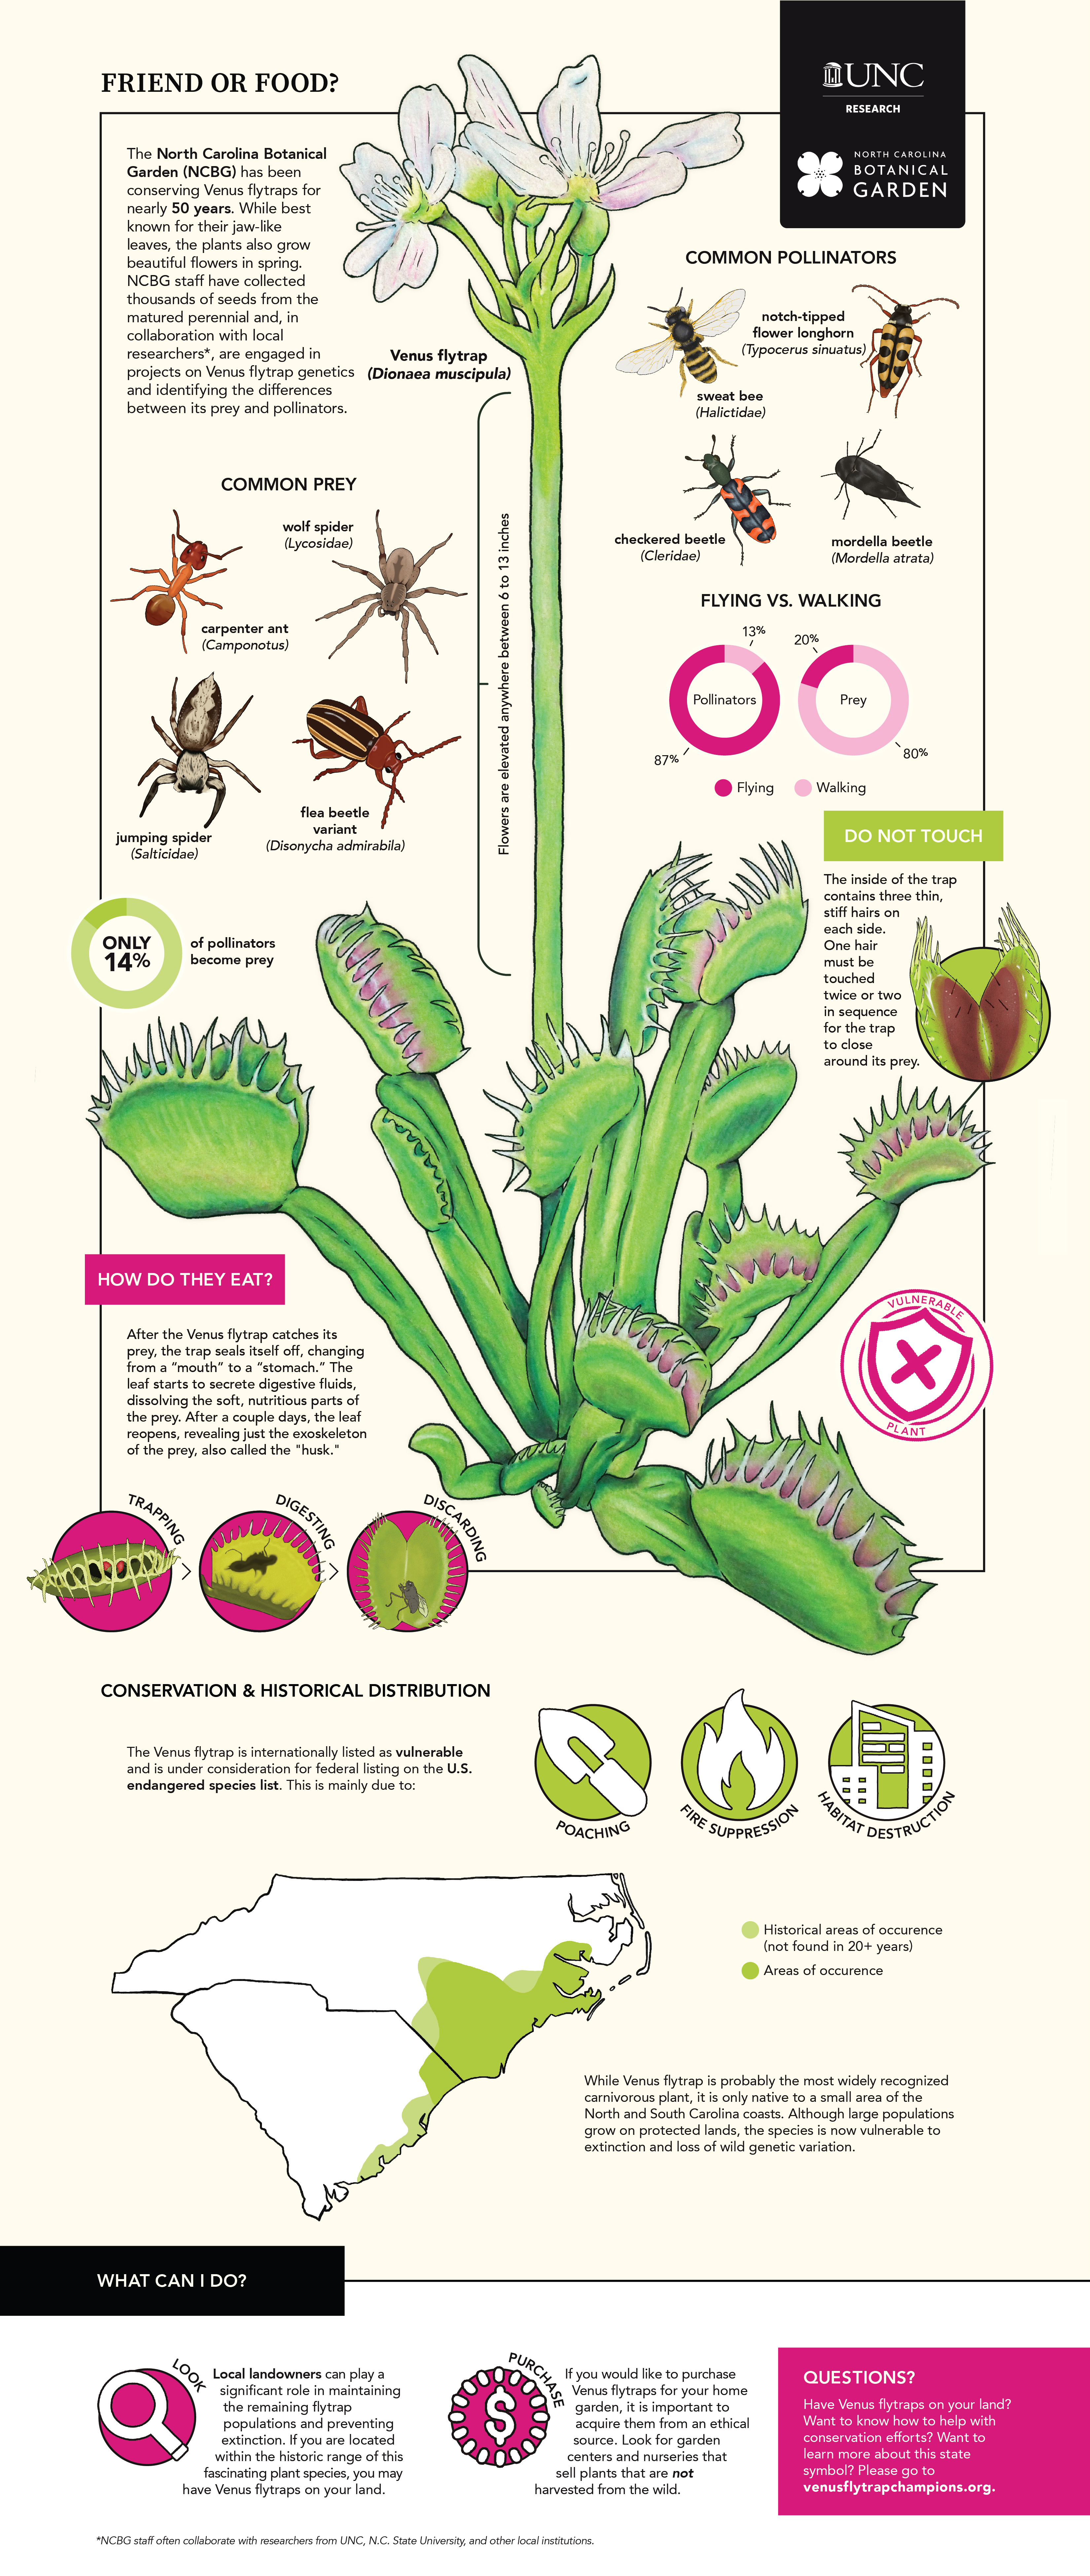 """Infographic based around the Venus flytrap. Title reads """"Friend or Food?"""" with a brief description of """"The North Carolina Botanical Garden (NCBG) has been conserving Venus flytraps for nearly 50 years. While best known for their jaw-like leaves, the plants also grow beautiful flowers in spring. NCBG staff have collected thousands of seeds from the matured perennial and, in collaboration with local researchers*, are engaged in projects on Venus flytrap genetics and identifying the differences between its prey and pollinators."""" There is a large drawing of the Venus flytrap, labeled by its scientific name """"Dionaea muscipula."""" Under the section of Common prey, you can find drawings of a carpenter ant (also known as a camponotus), a wolf spider (also known as a lycosidae), a jumping spider (also known as a salticidae), and a flea beetle variant (known as a disonycha admirabila). Under the section Common pollinators, you can find drawings of a sweat bee (also known as a halictidae), a notch-tipped flower longhorn (also known as a typocerus sinuatus), a checkered beetle (also known as a cleridae), and a mordella beetle (also known as a mordella atrata). Below that, you can find a set of pie charts, showing the difference between flying and walking pollinators and prey. Of pollinators, 87% of them are flying, and of prey, only 20% of them fly. Also found is a pie chart that says """"Only 14% of pollinators become prey.) Also found is a label on the stem of the flower, saying """"Flowers are elevated anywhere between 6 to 13 inches."""" A section labeled """"Do not touch"""" reads """"The inside of the trap contains three thin, stiff hairs on each side. One hair must be touched twice or two in sequence for the trap to close around its prey."""" There is a drawing of the Venus flytrap leaf open, showing the three hairs. A stamp of a shield with an """"X"""" through it reads """"vulnerable plant."""" Section labeled """"How do they eat?"""" says After the Venus flytrap catches its prey, the trap seals itself off, c"""